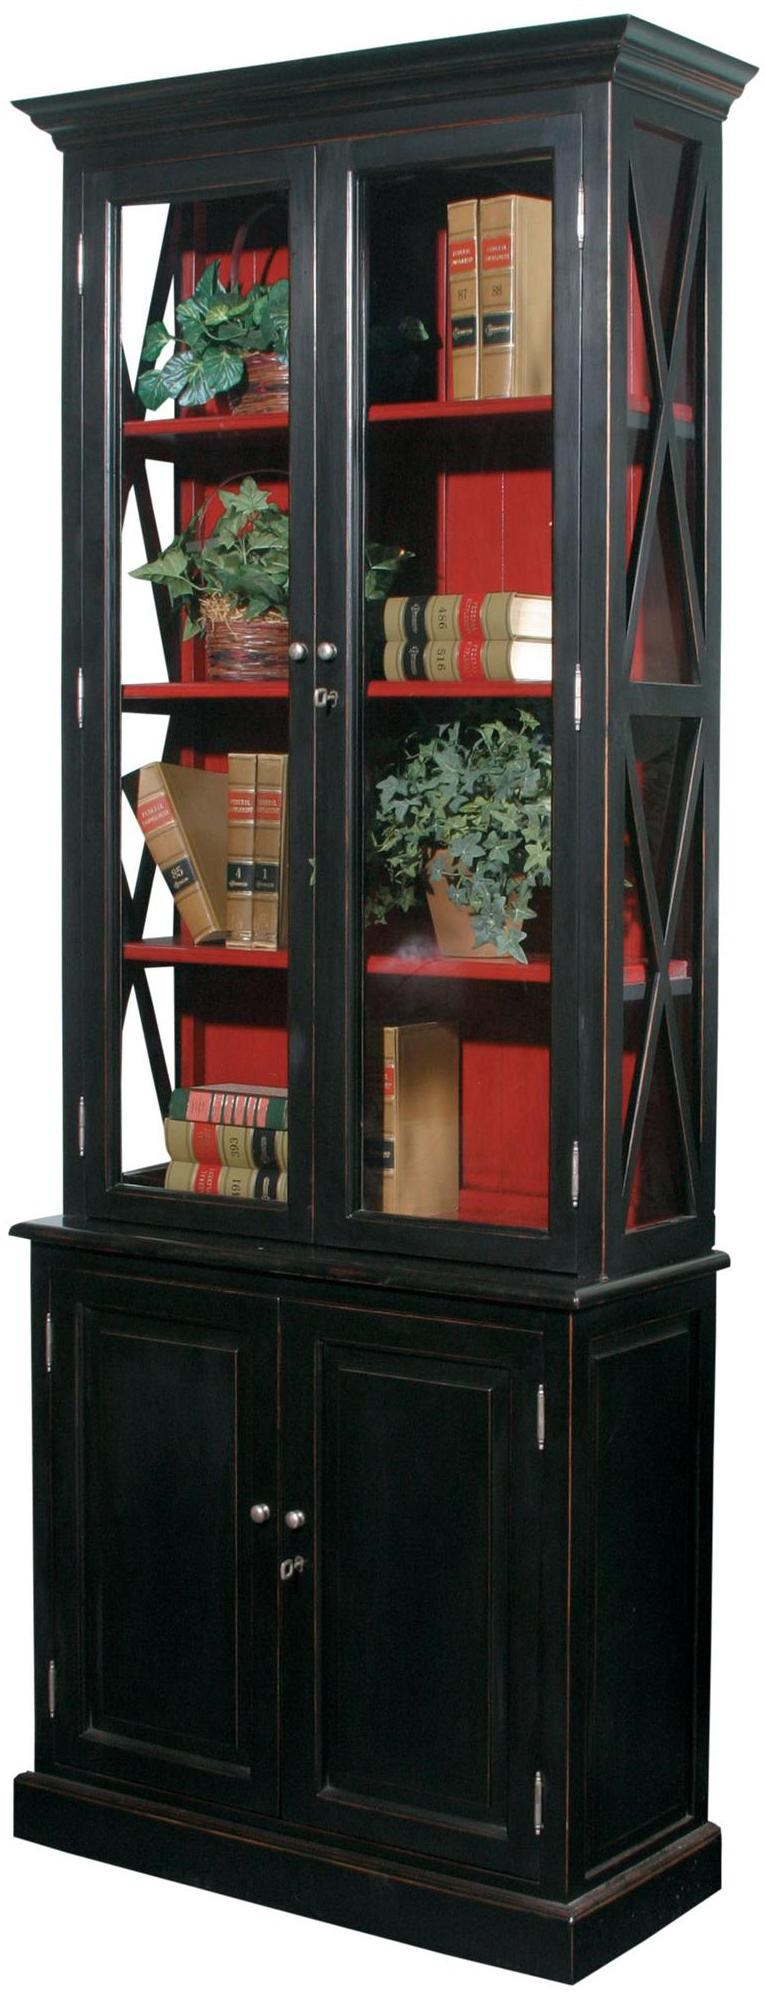 Accents 4 Door Stratford Cabinet With 3 Shelves By Furniture Classics